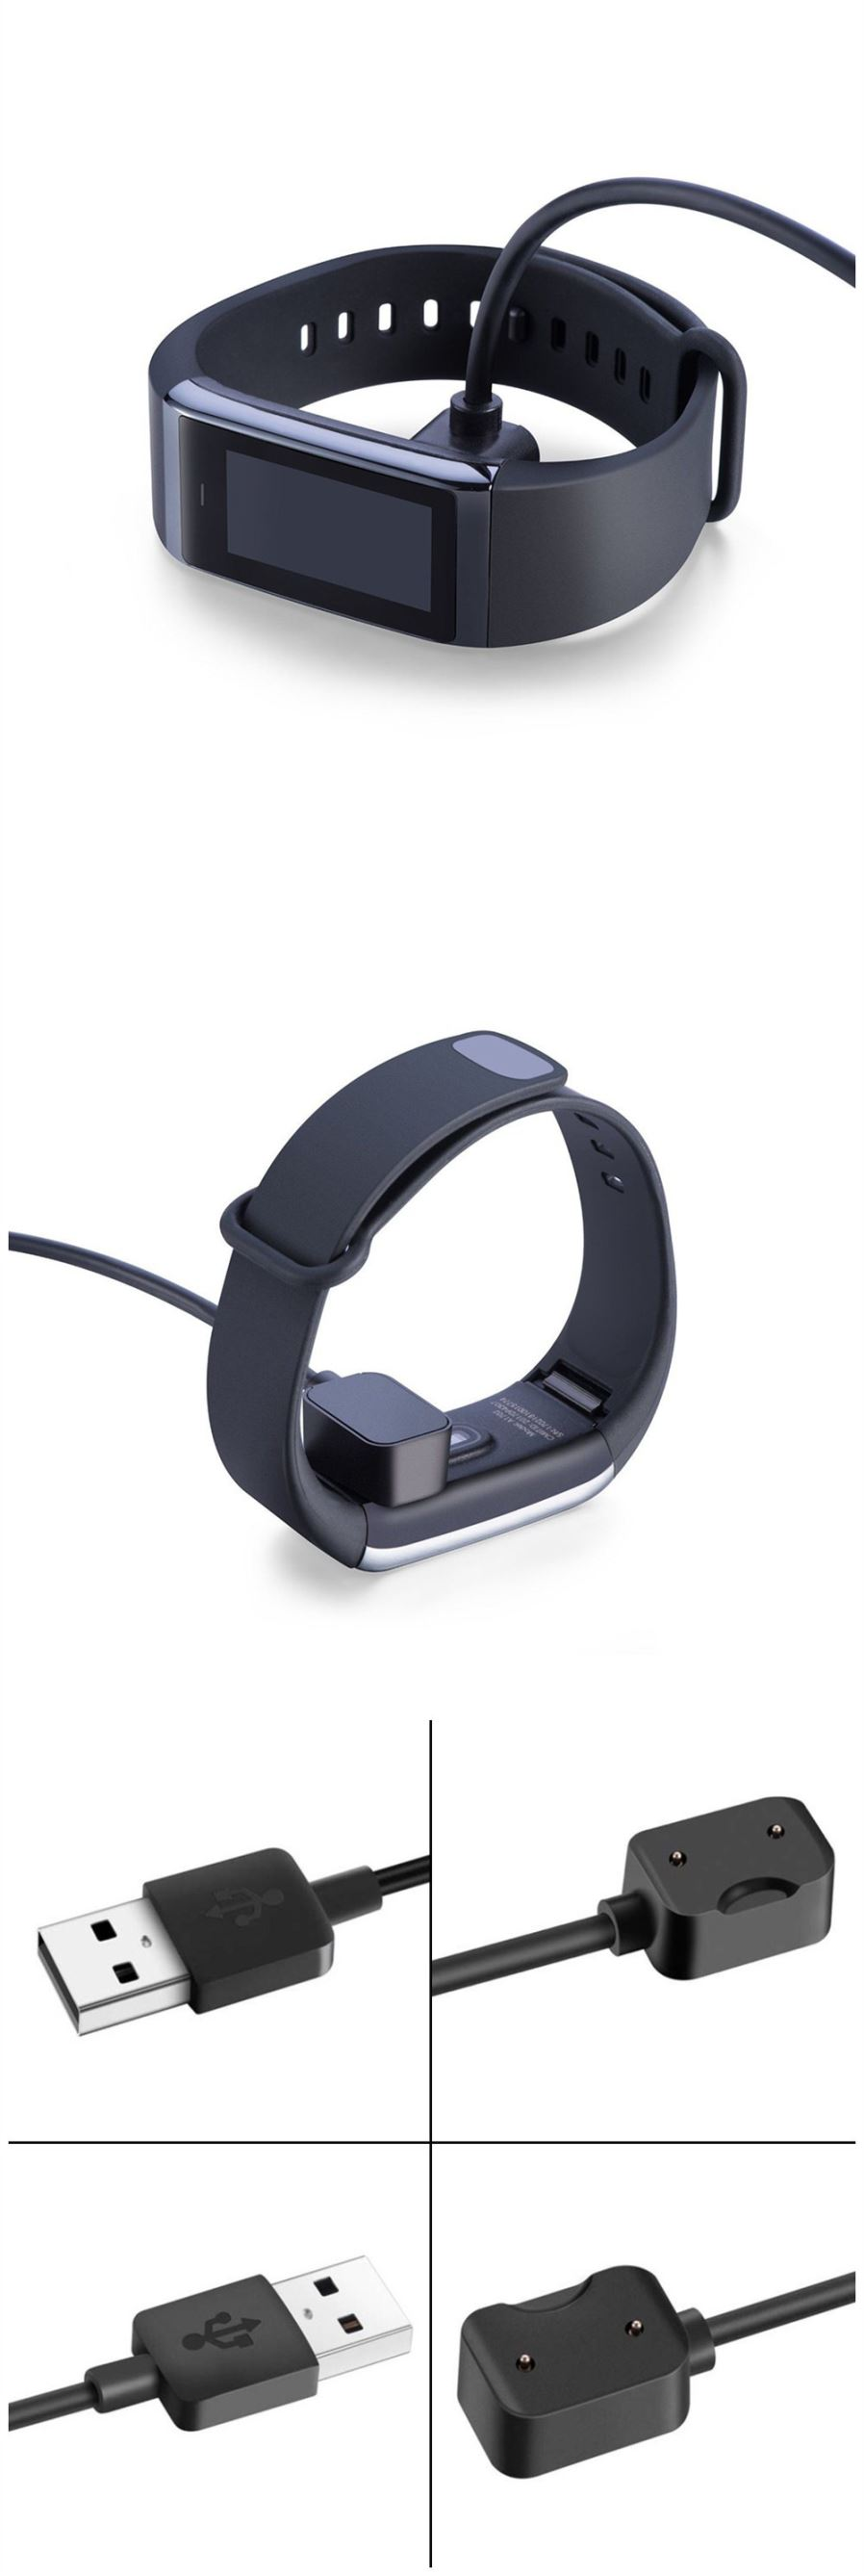 Fitness Trackers Portable Magnetic Usb Charging Cable For Xiaomi Huami Amazfit Charger General